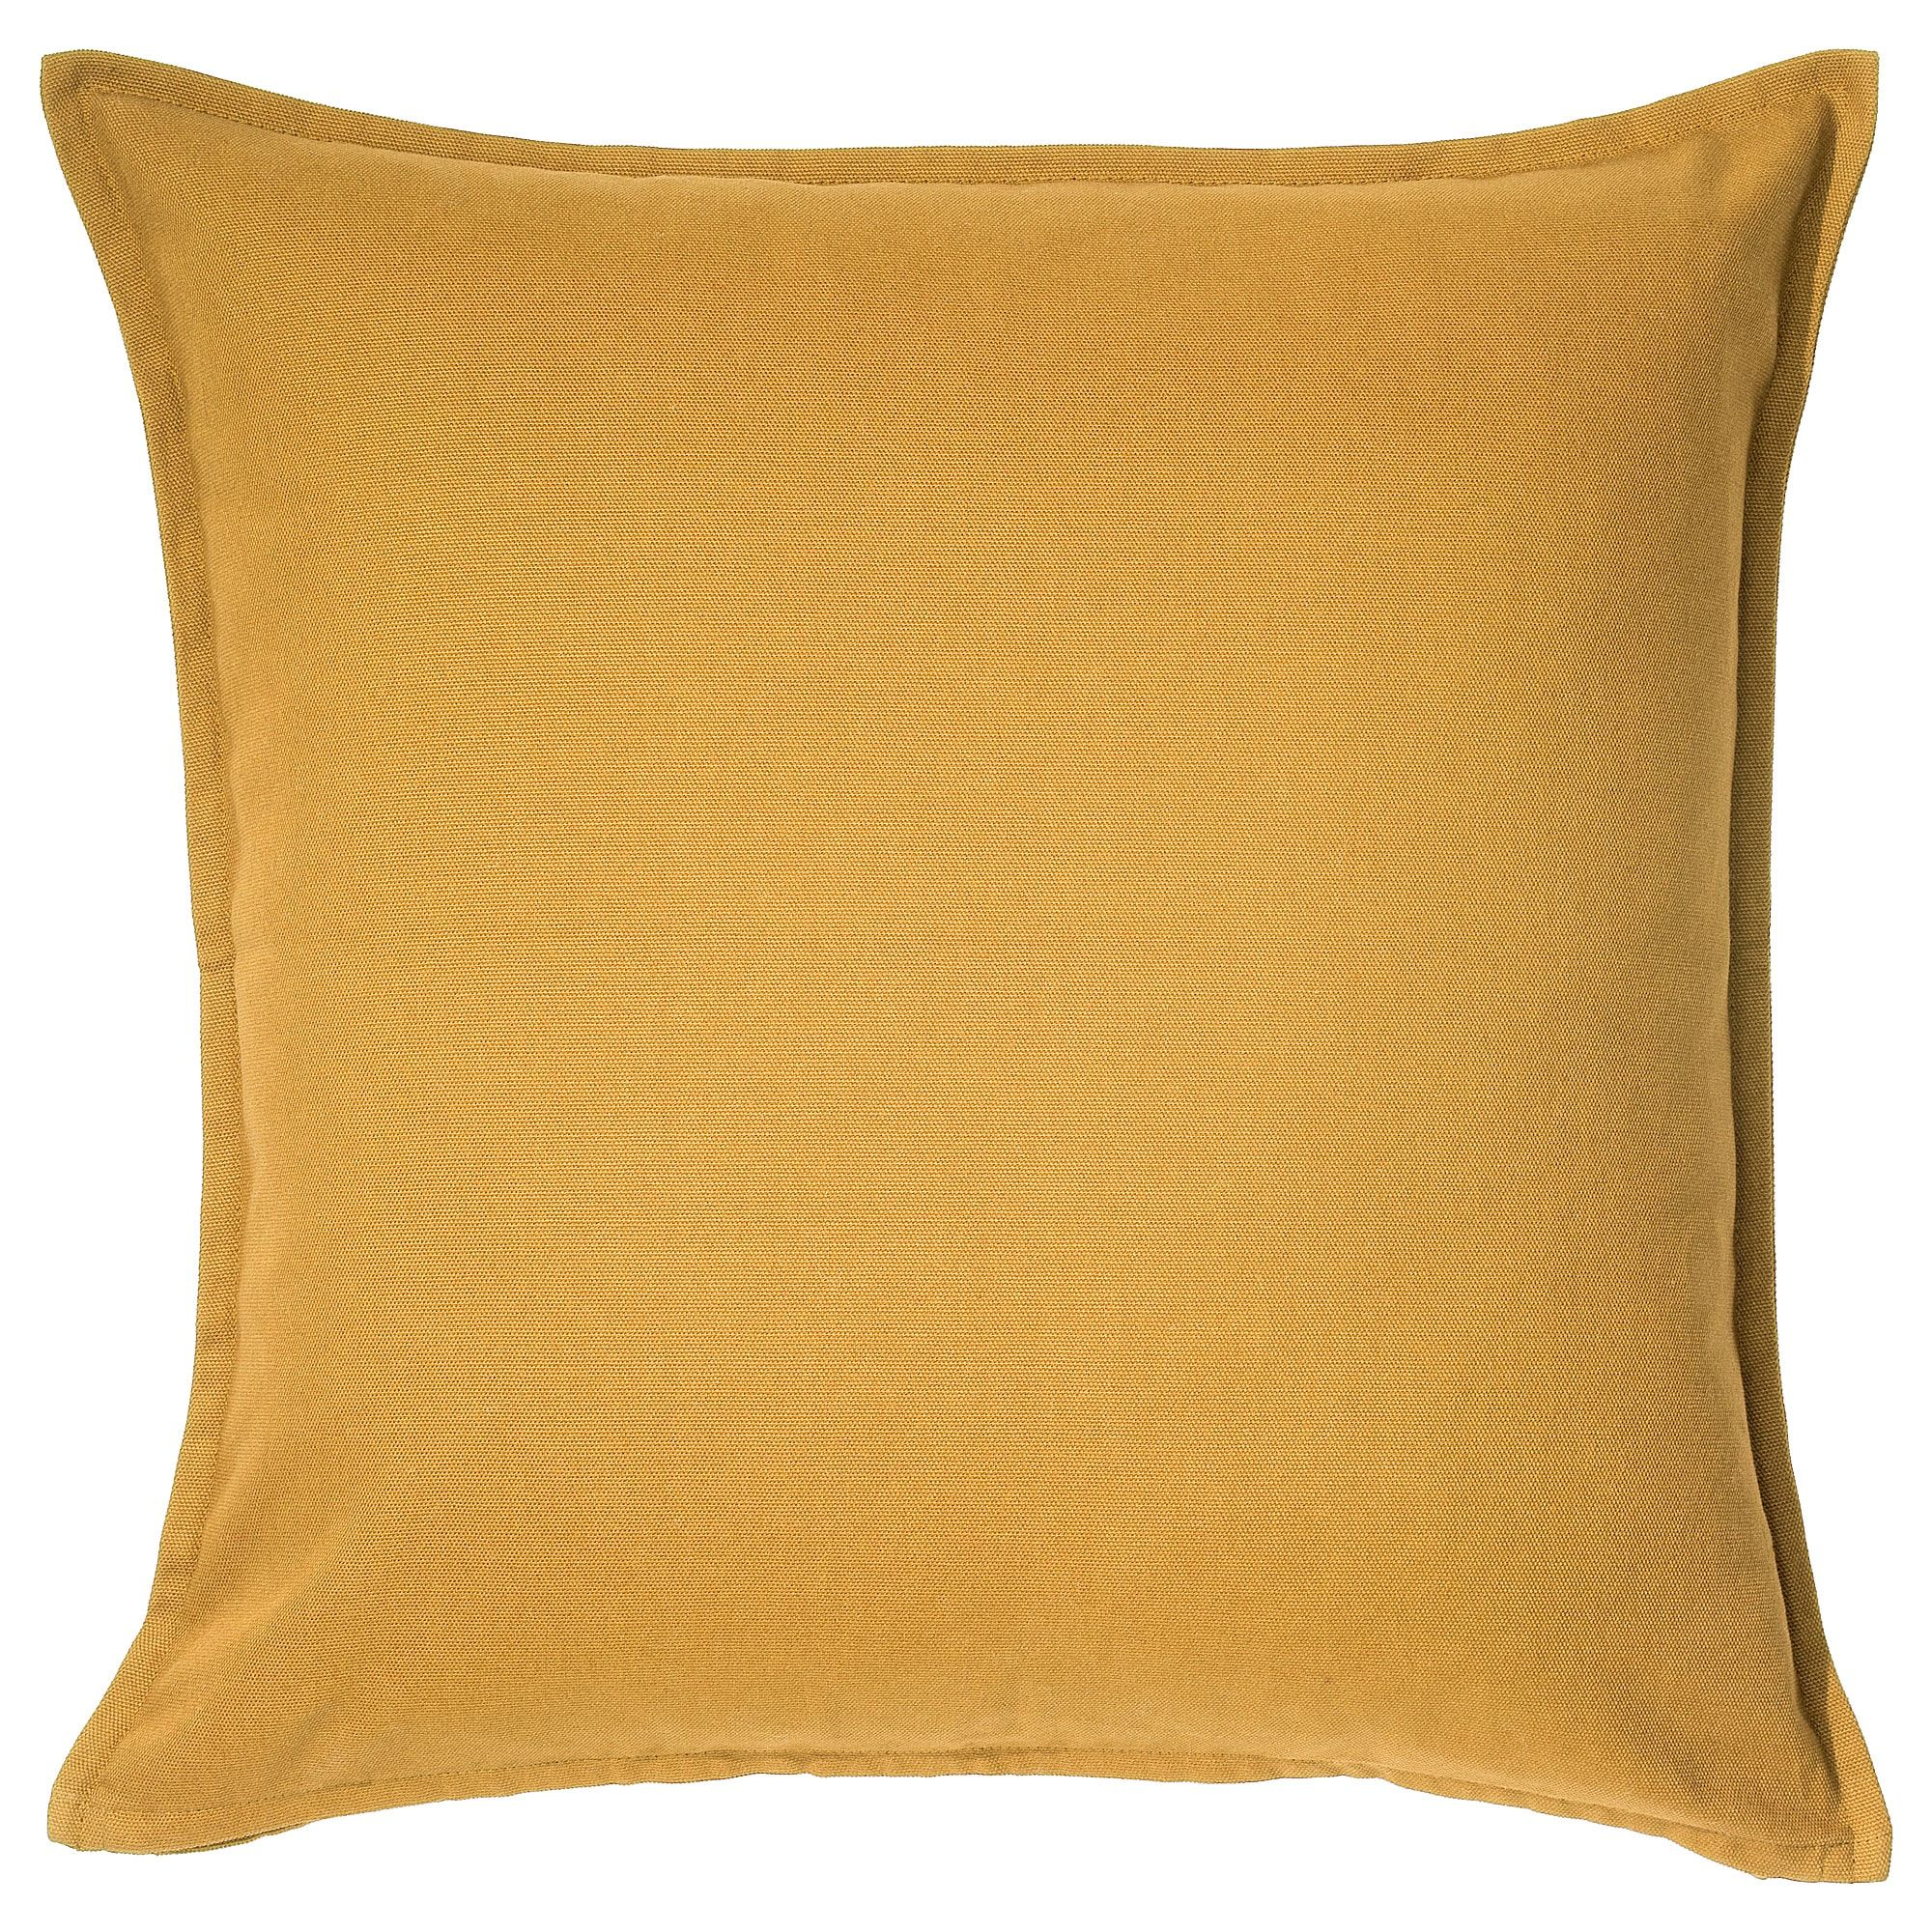 Gurli Cushion Cover Ikea Or Do Two Of These With A Lumbar Pillow Too